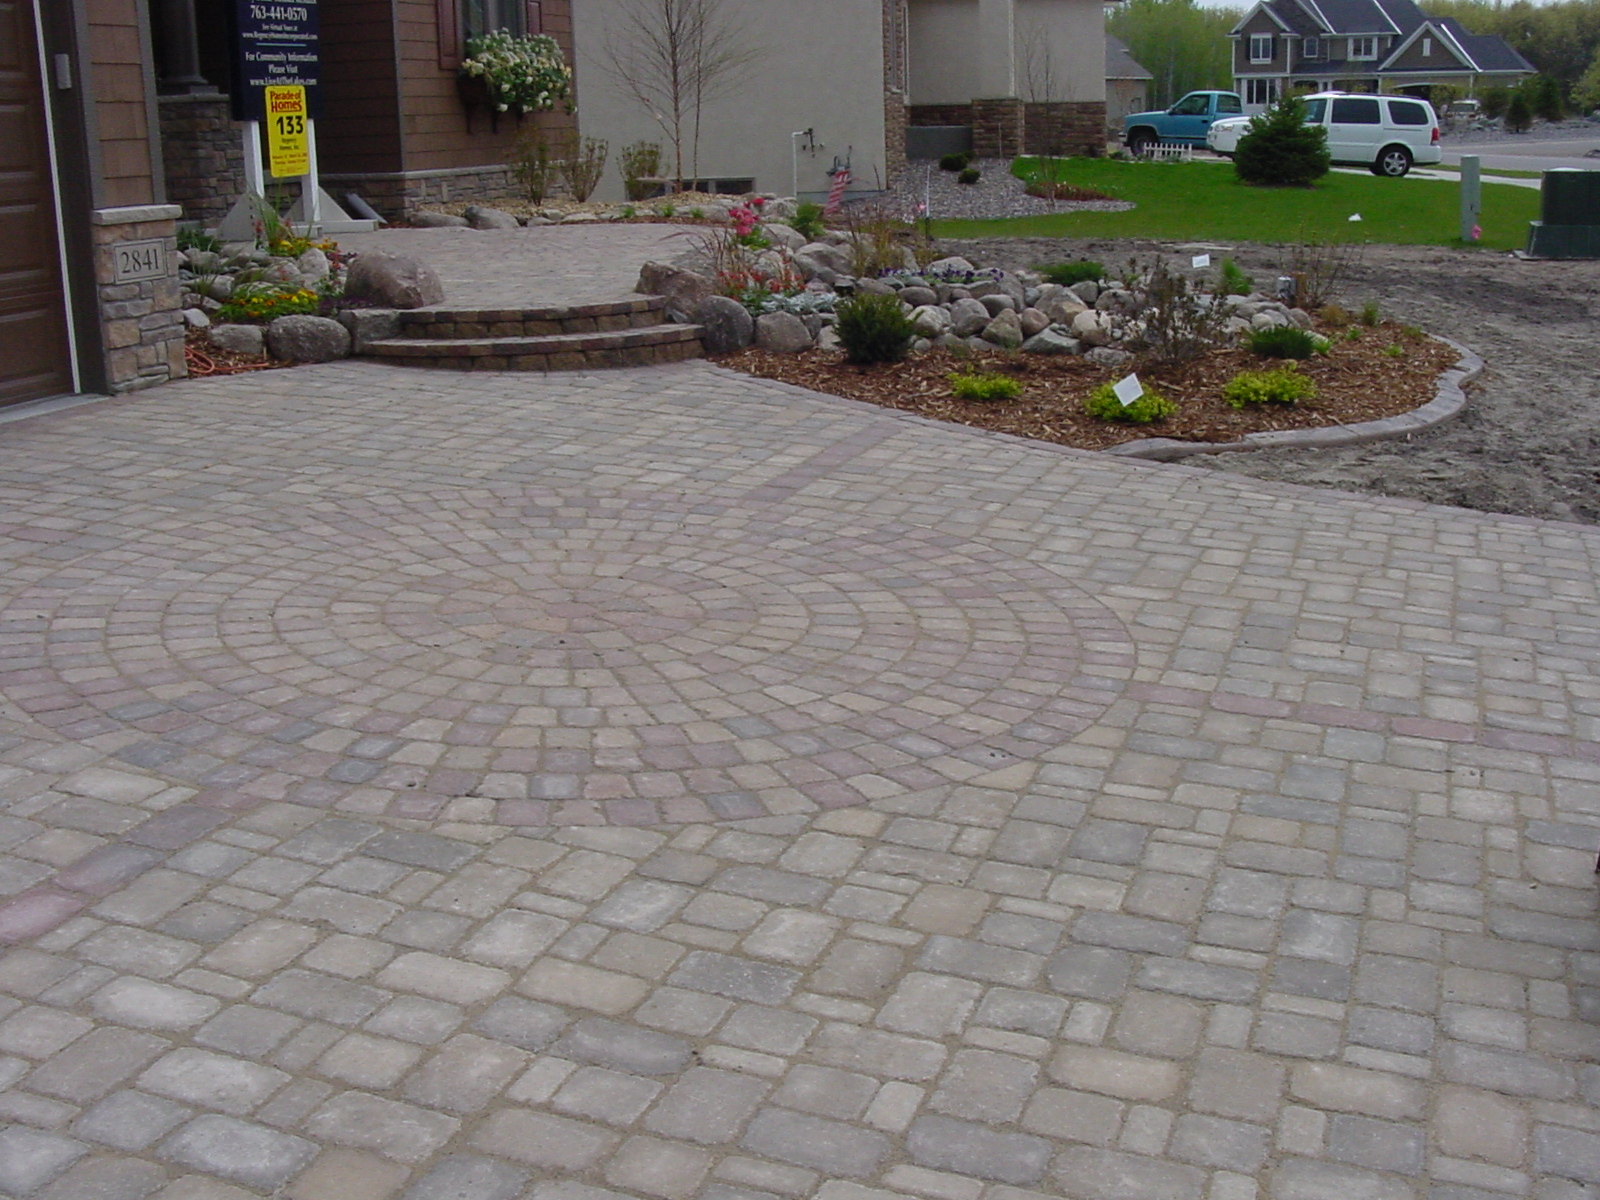 Interlocking Brick Pavers Cool Brick Paver Driveway Permeable Environmentally Friendly Paving